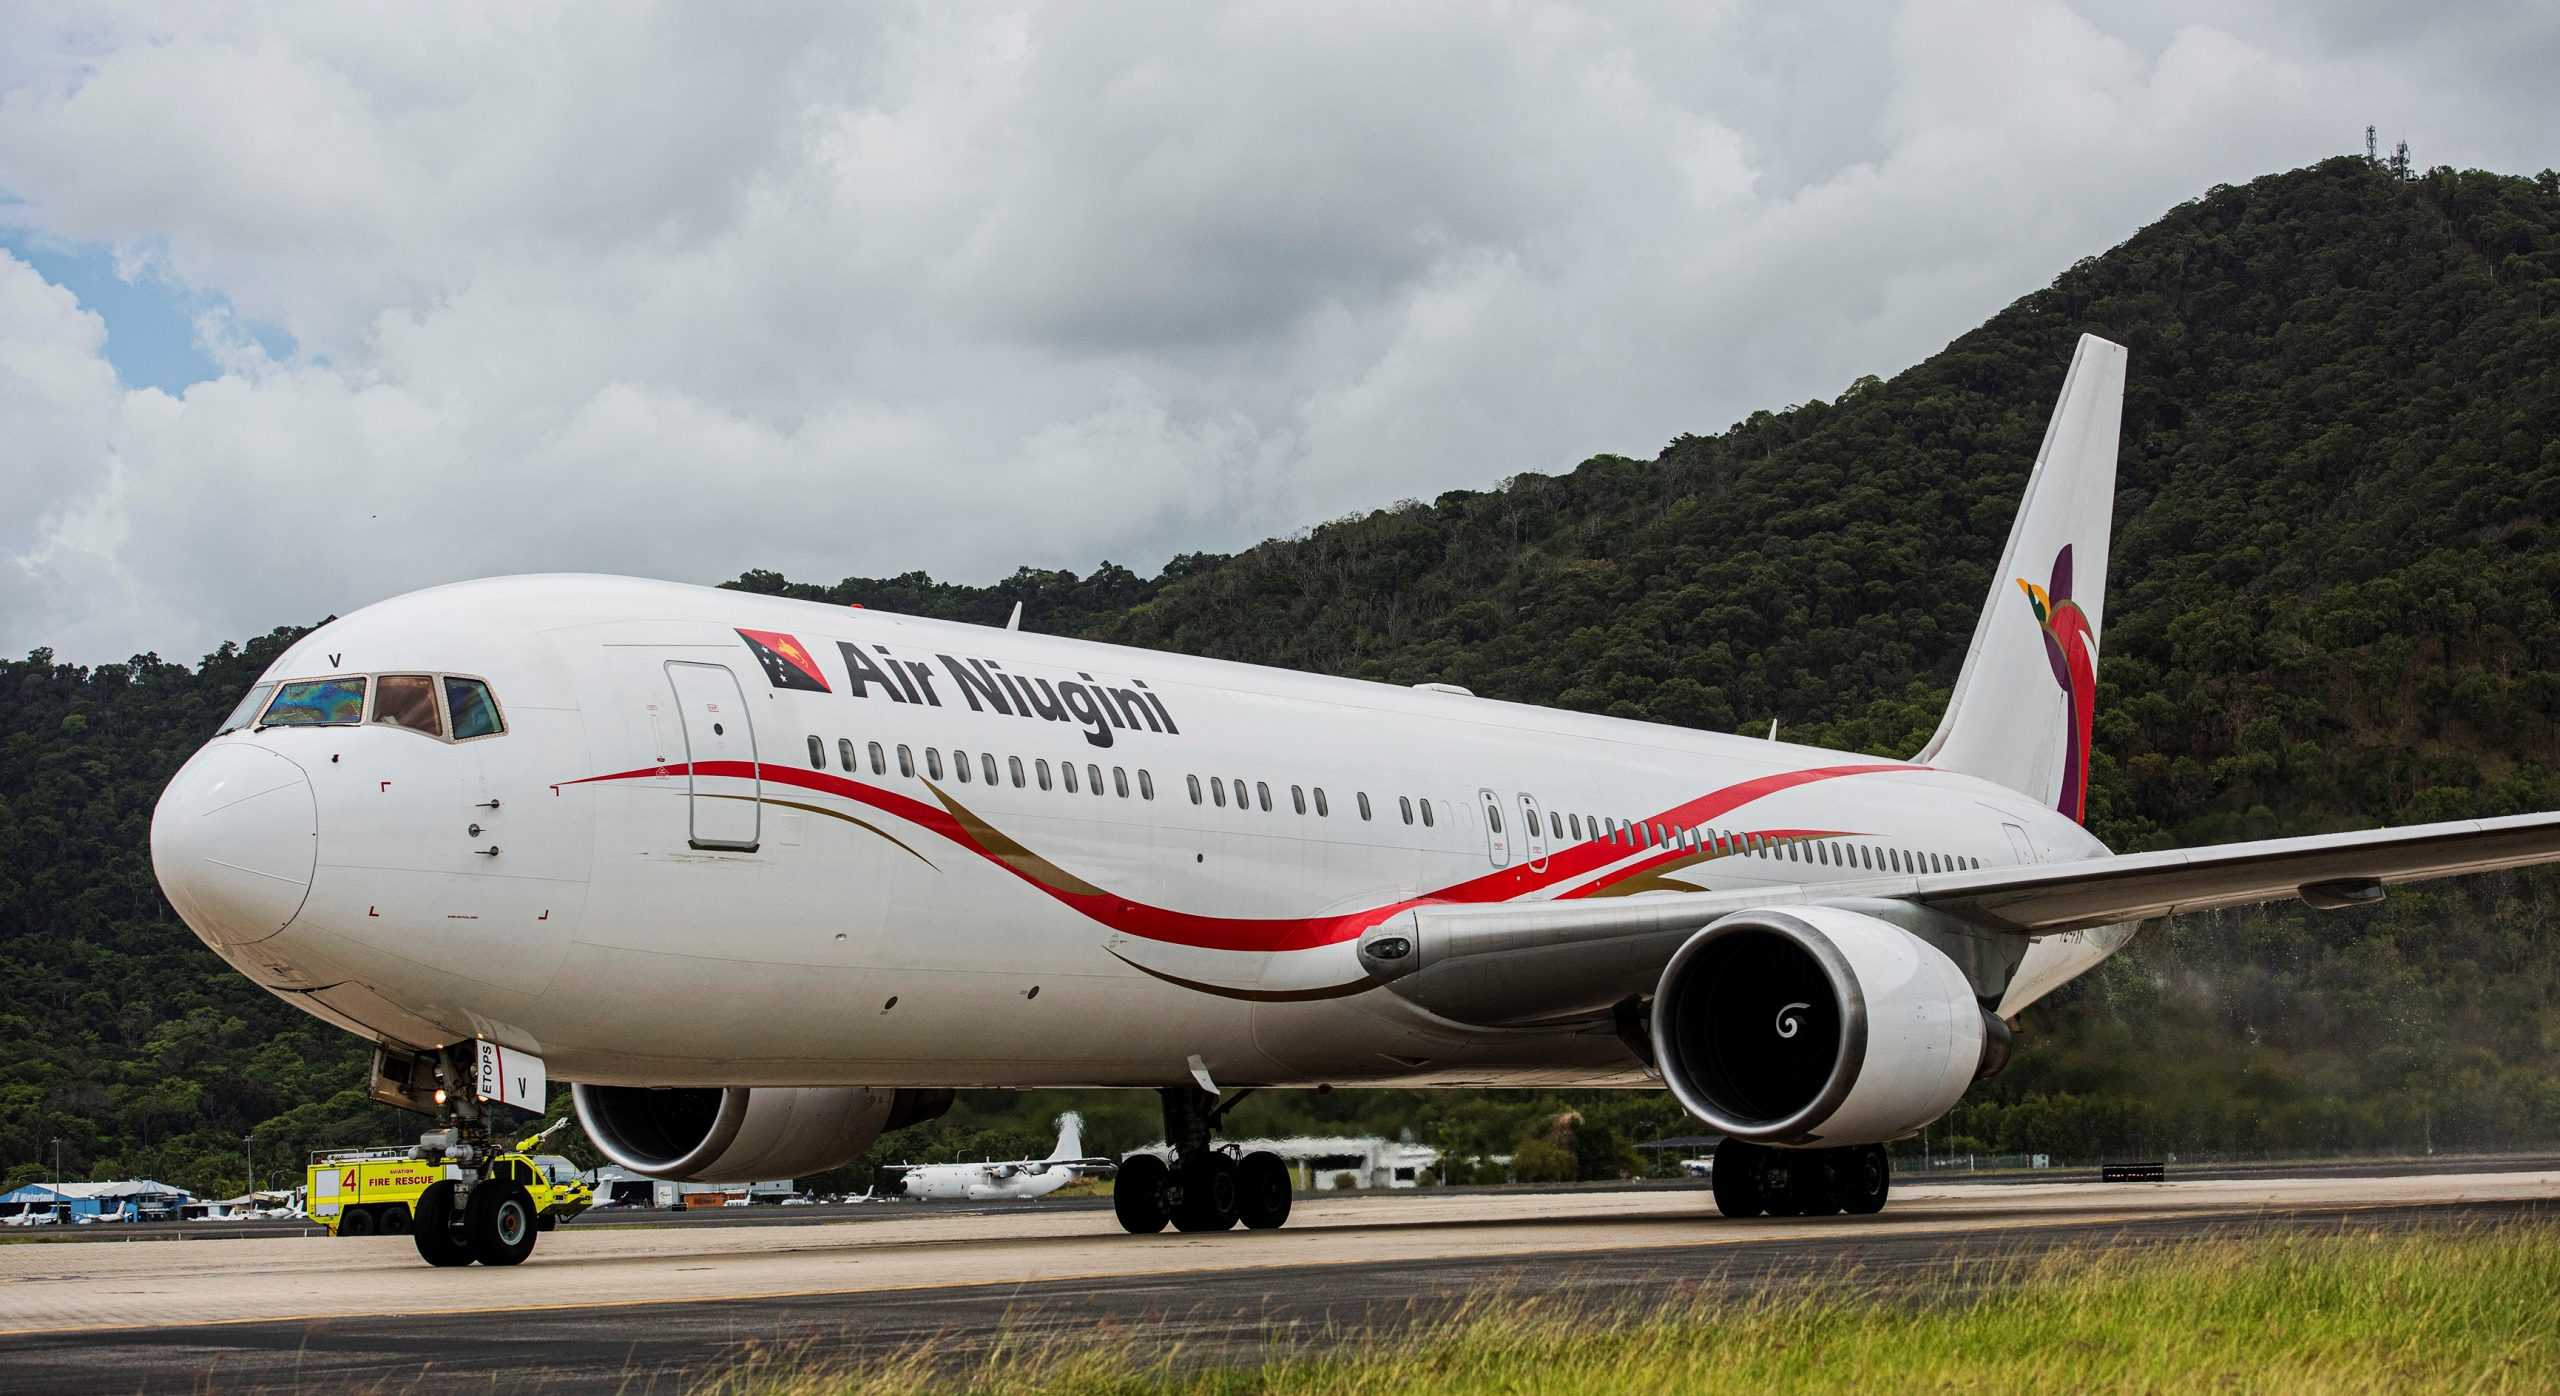 AIR NIUGINI RESUME FLIGHTS FROM CAIRNS TO PORT MORESBY